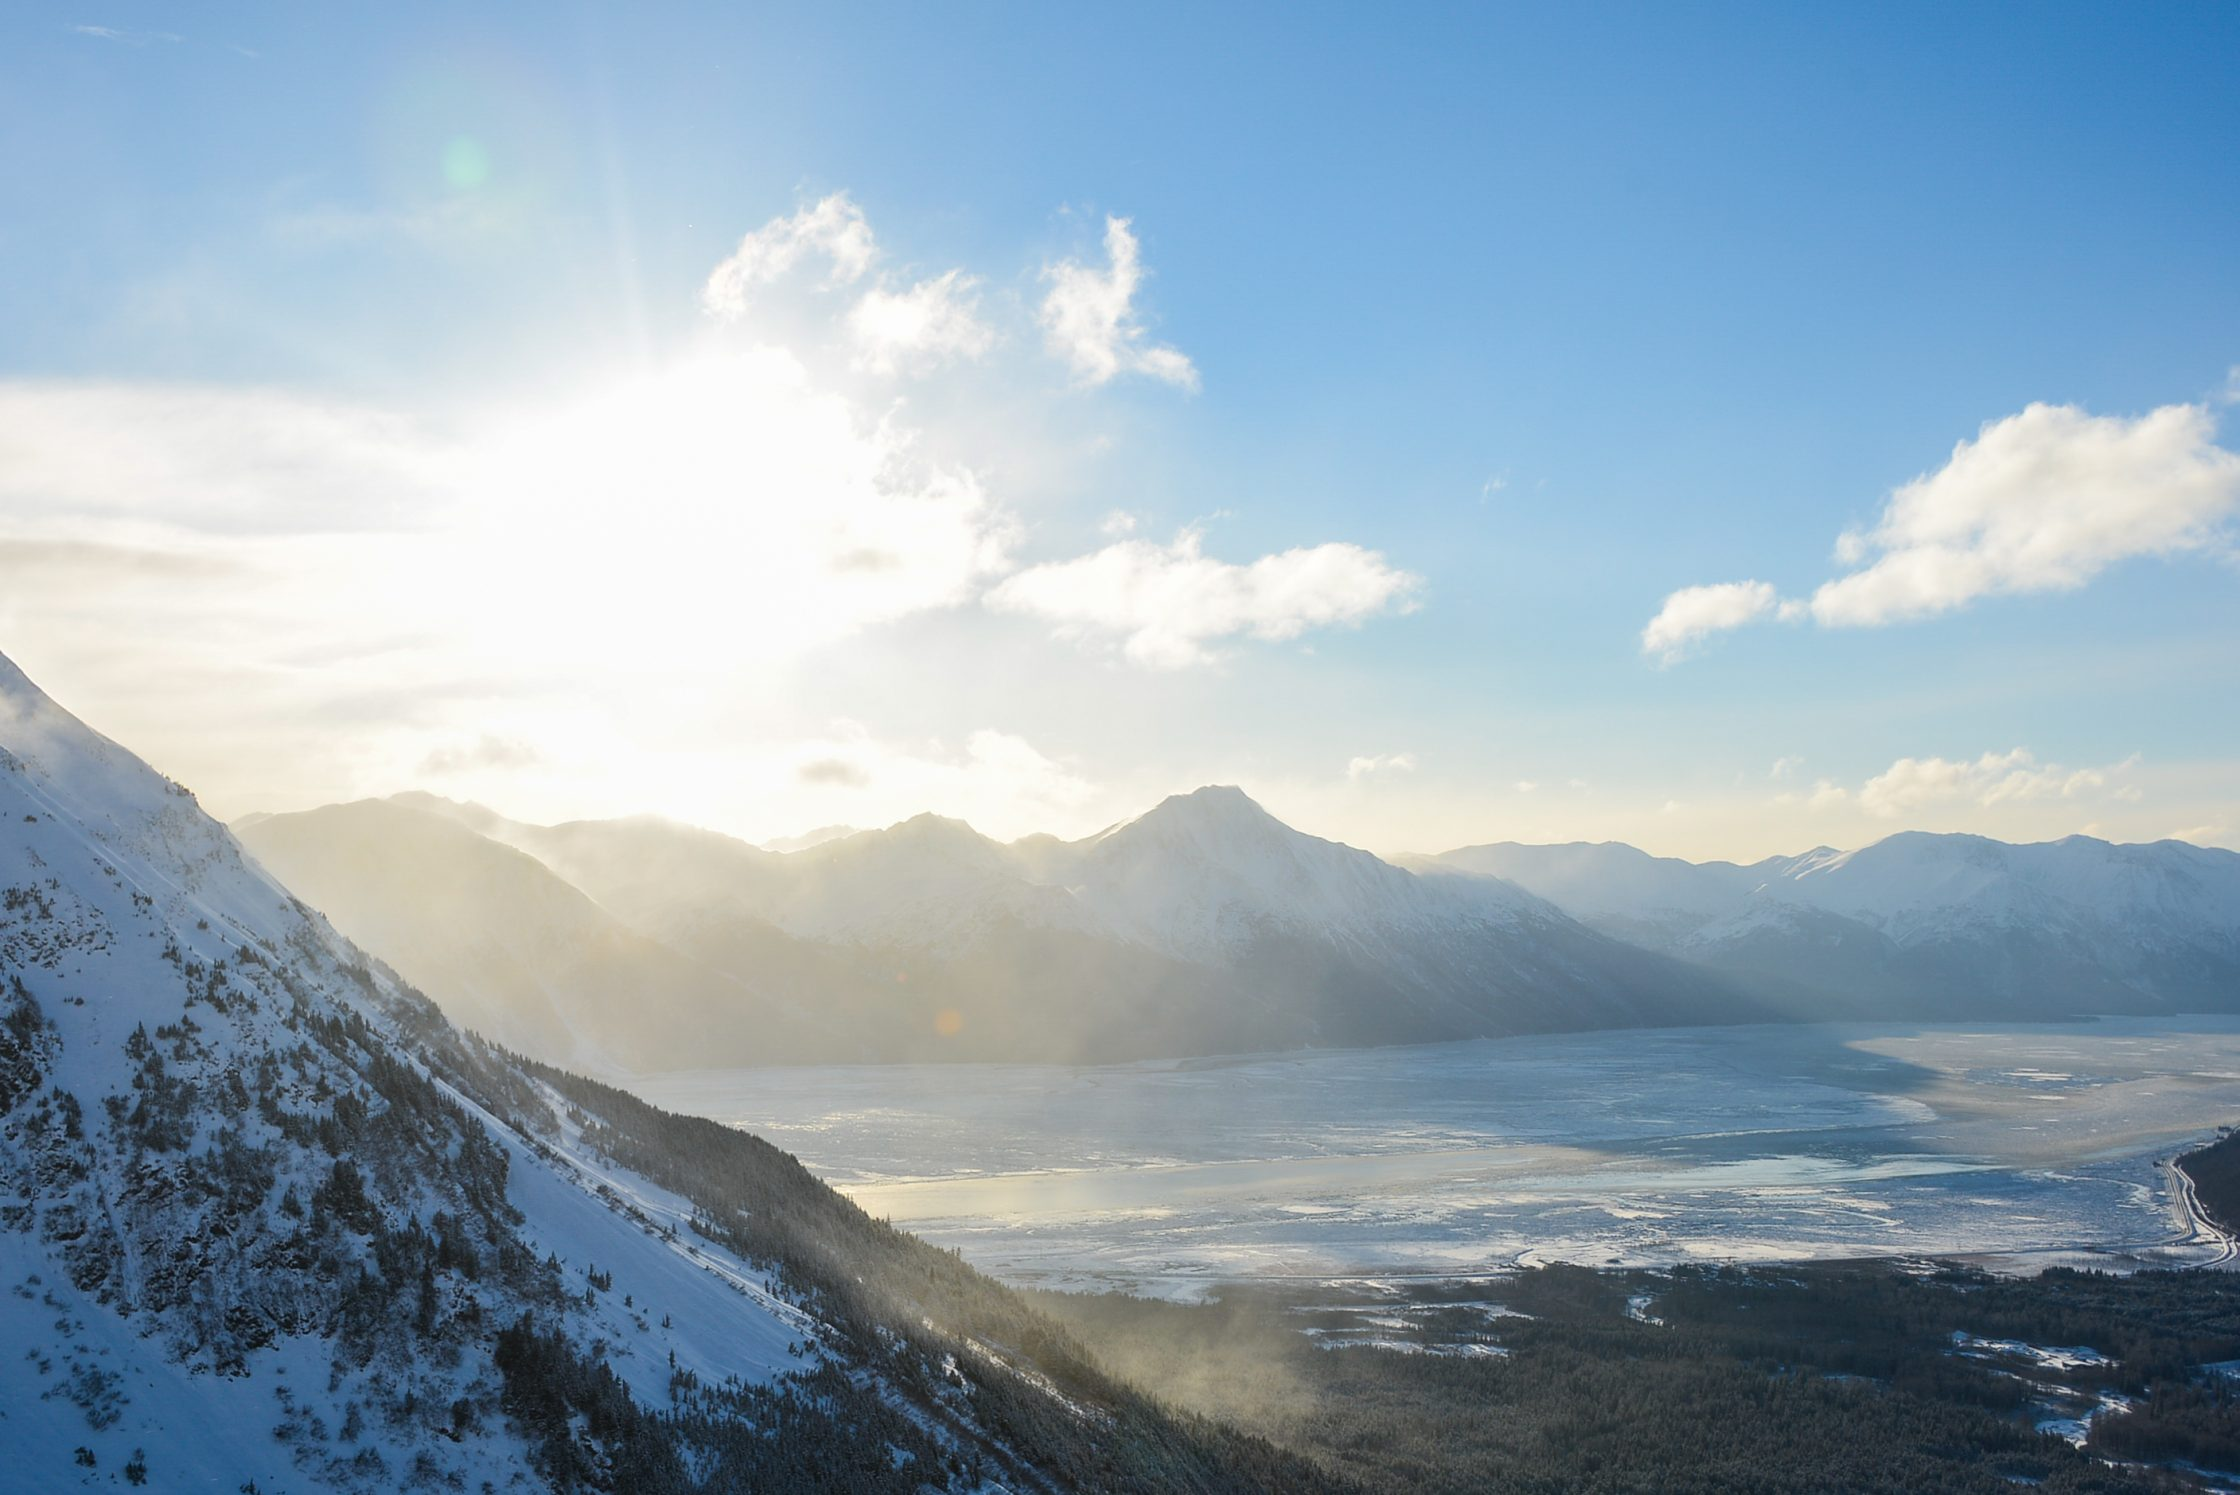 Arctic landscape seen from the top of a snowy mountain with a frozen bay and more mountains in the background.